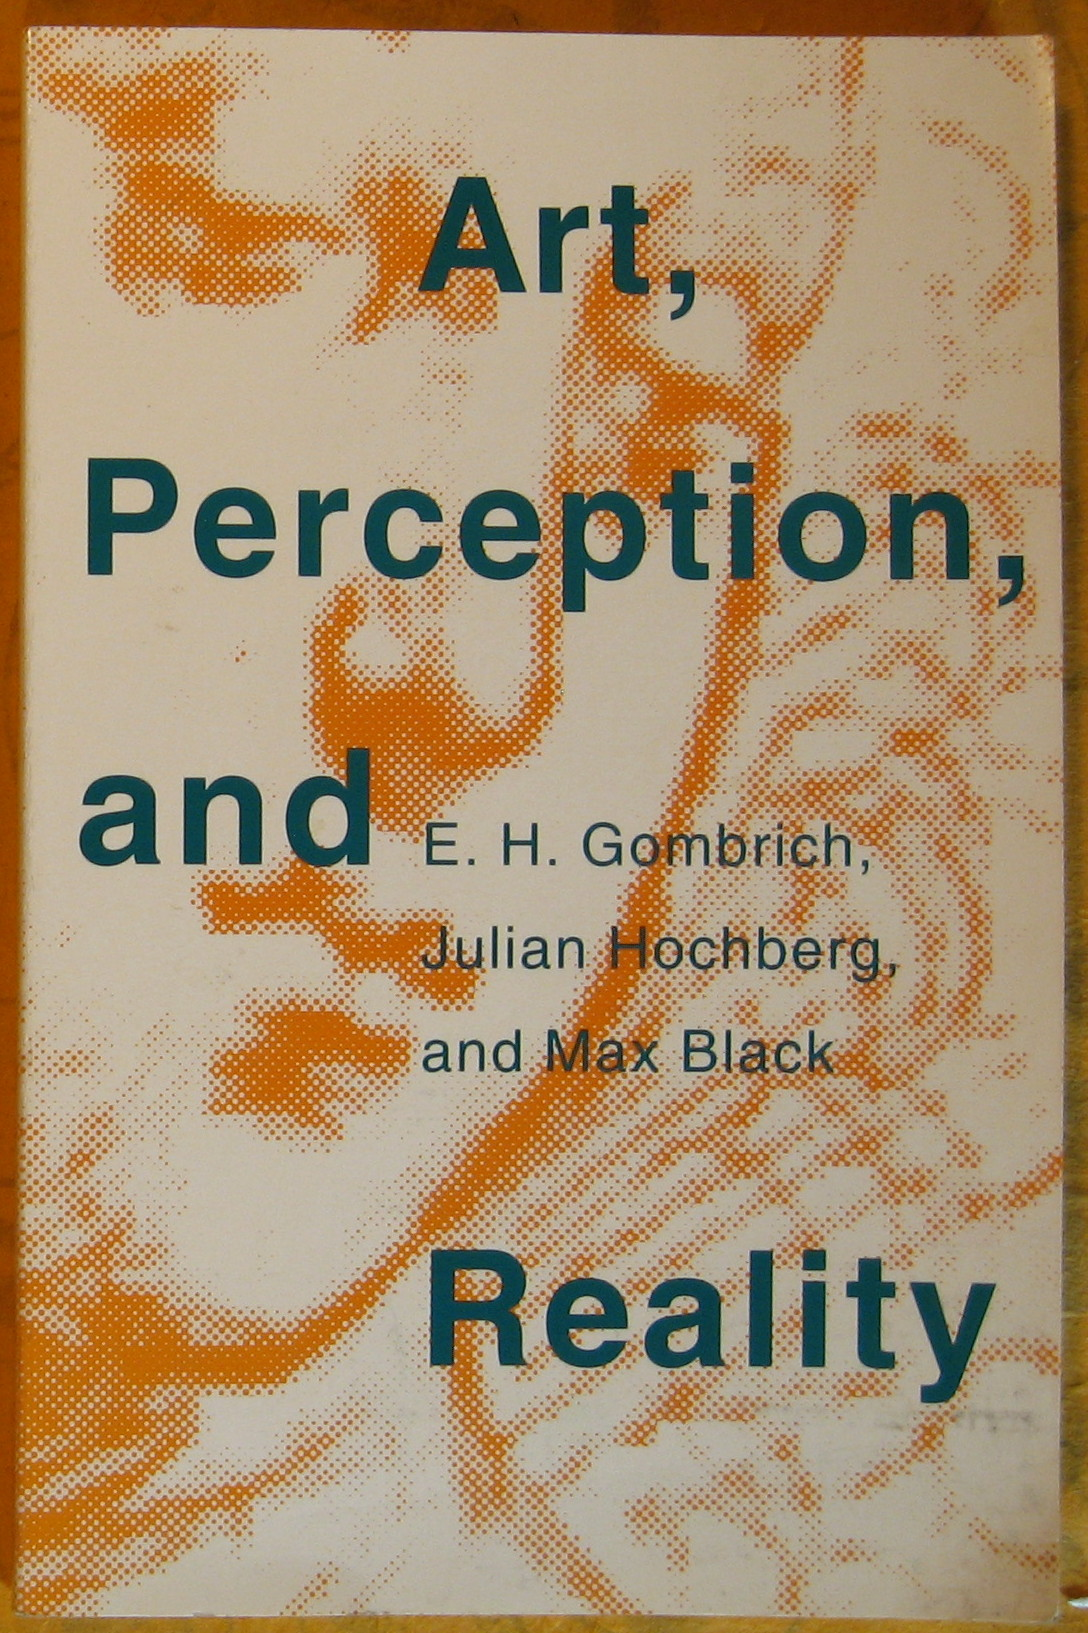 Image for Art, Perception, and Reality (Thalheimer Lectures)